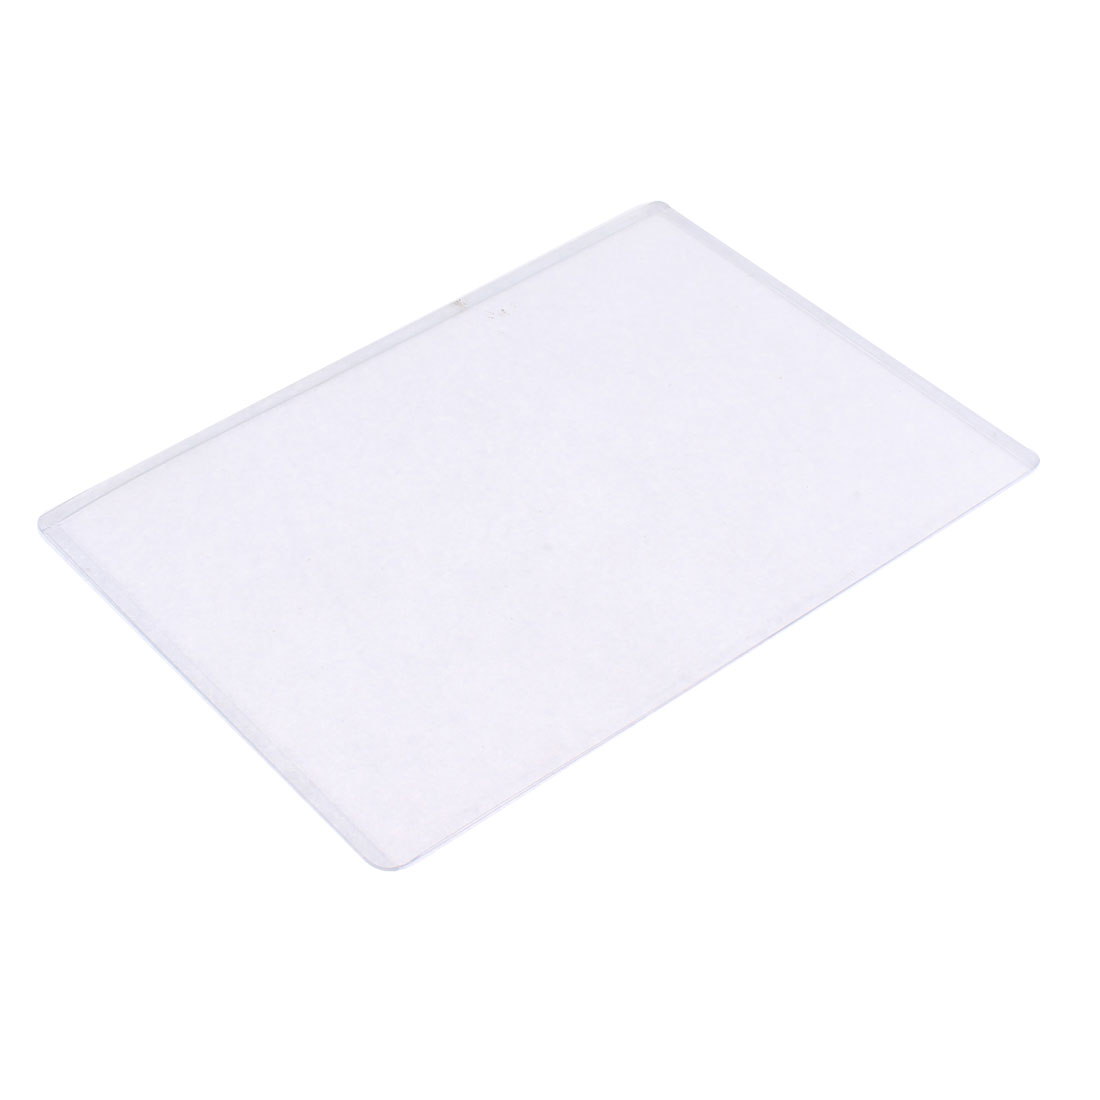 Plastic B6 Paper Picture Photo Contract Protector Holder Cover Case